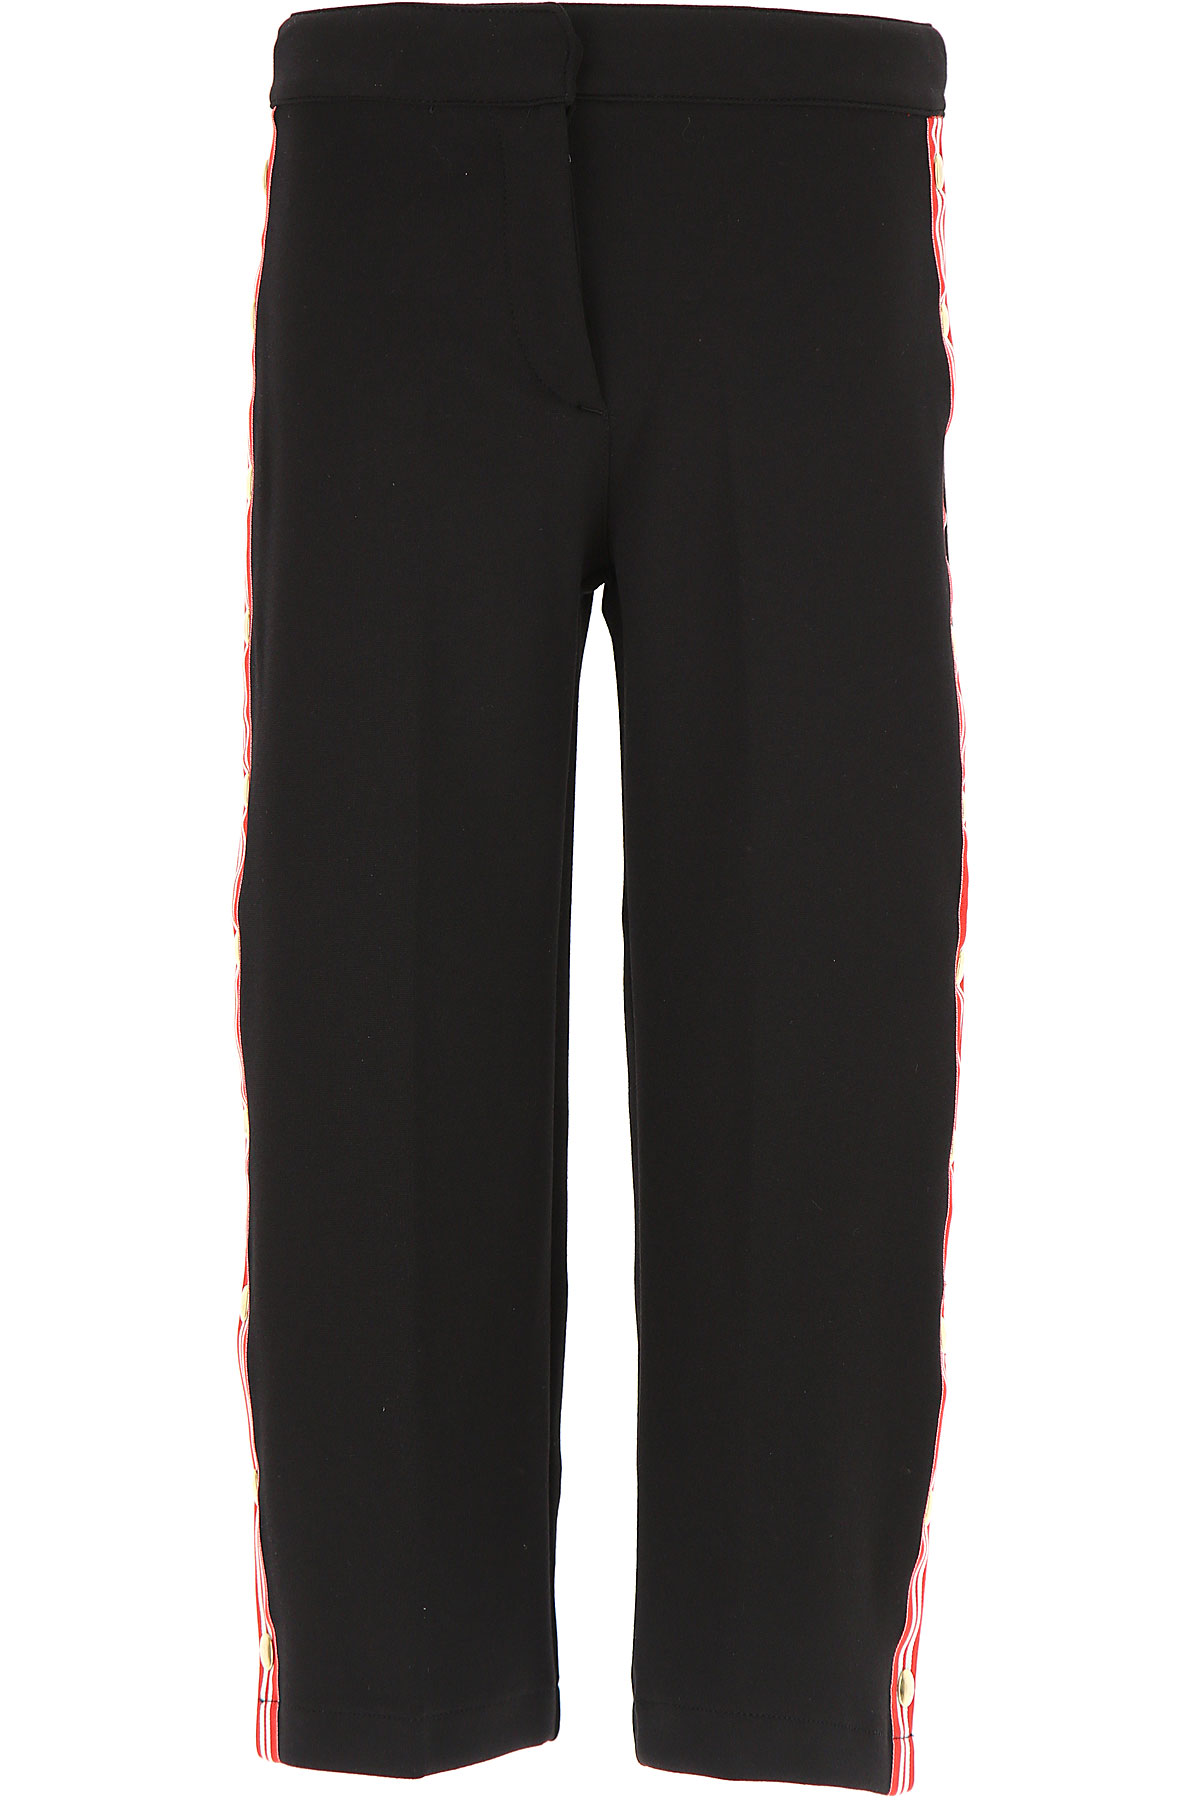 Image of Stella Jean Kids Pants for Girls, Black, polyester, 2017, 10Y 14Y 4Y 6Y 8Y